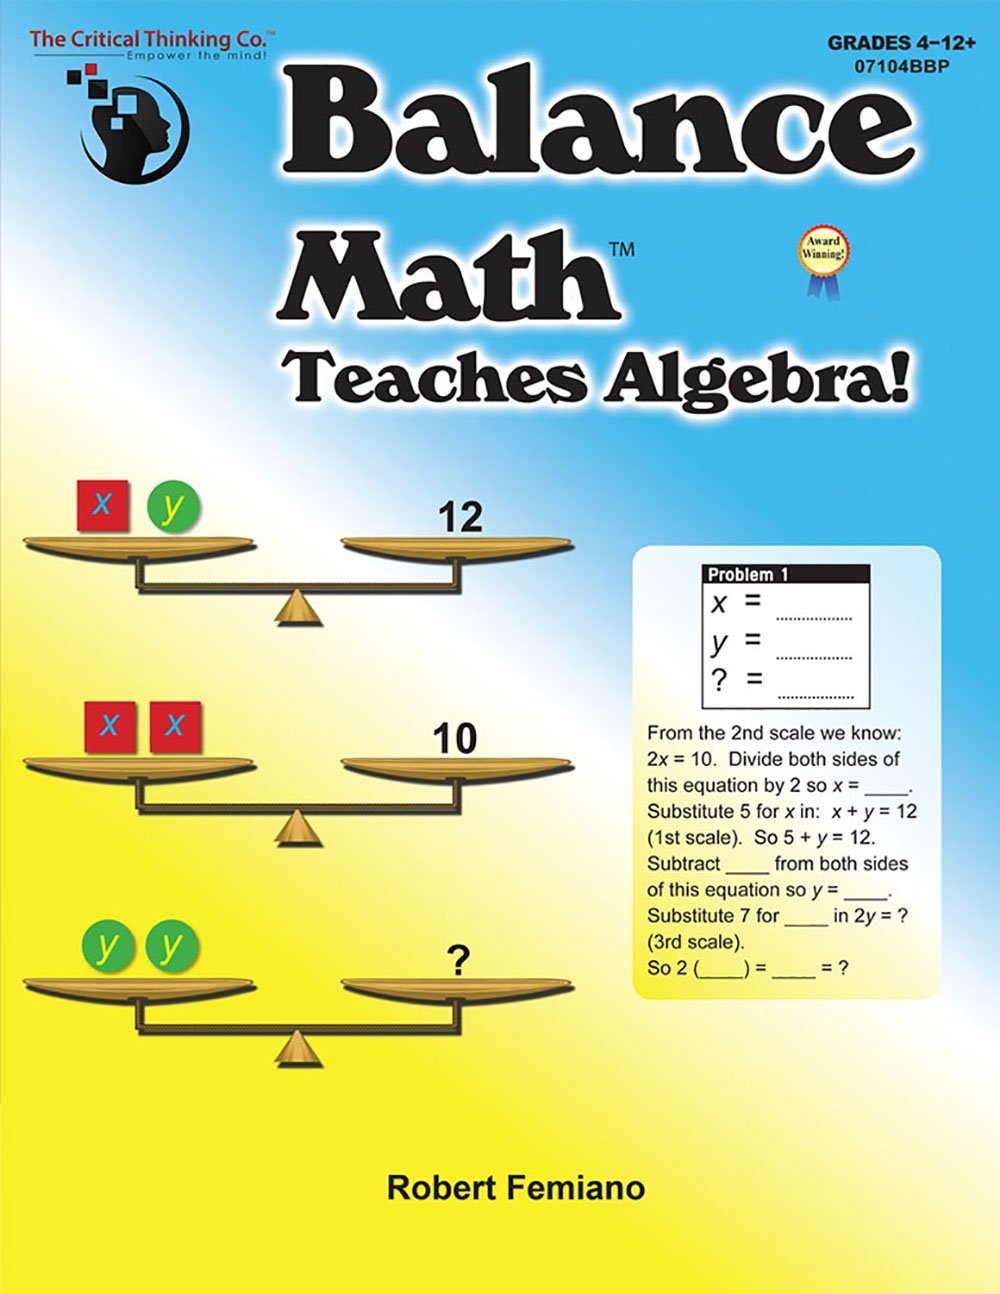 Balance Math Teaches Algebra!: Robert Femiano: 9781601444080: Amazon.com:  Books